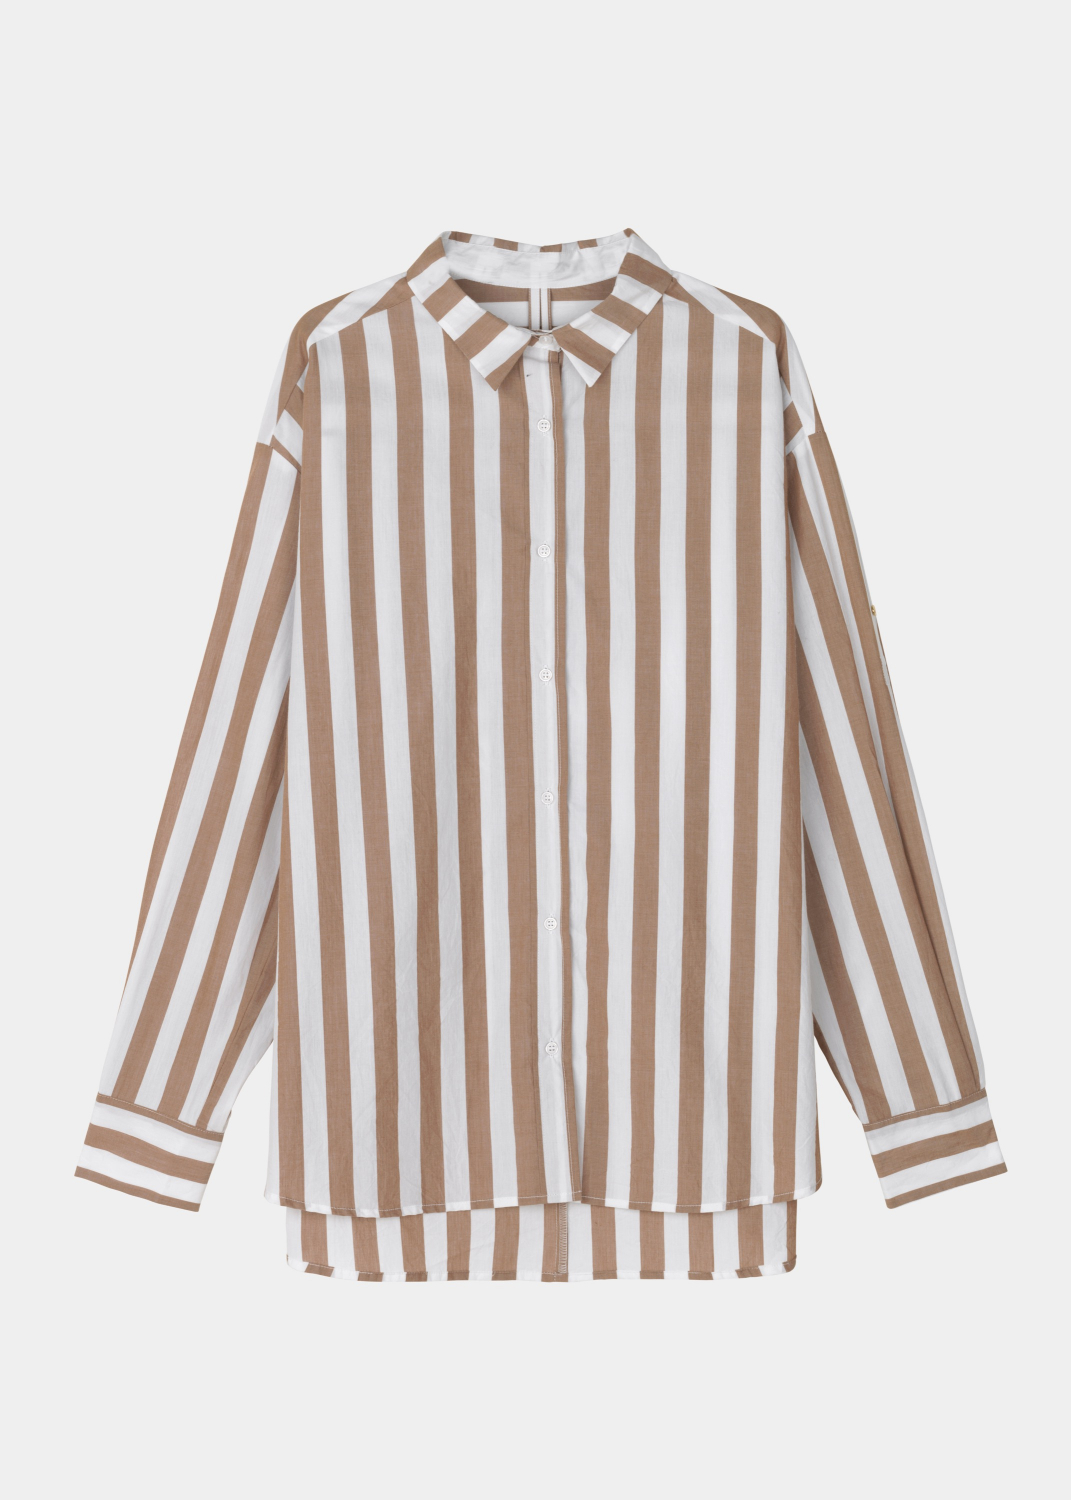 The Circle Collection - Circle Shirt Striped Thumbnail